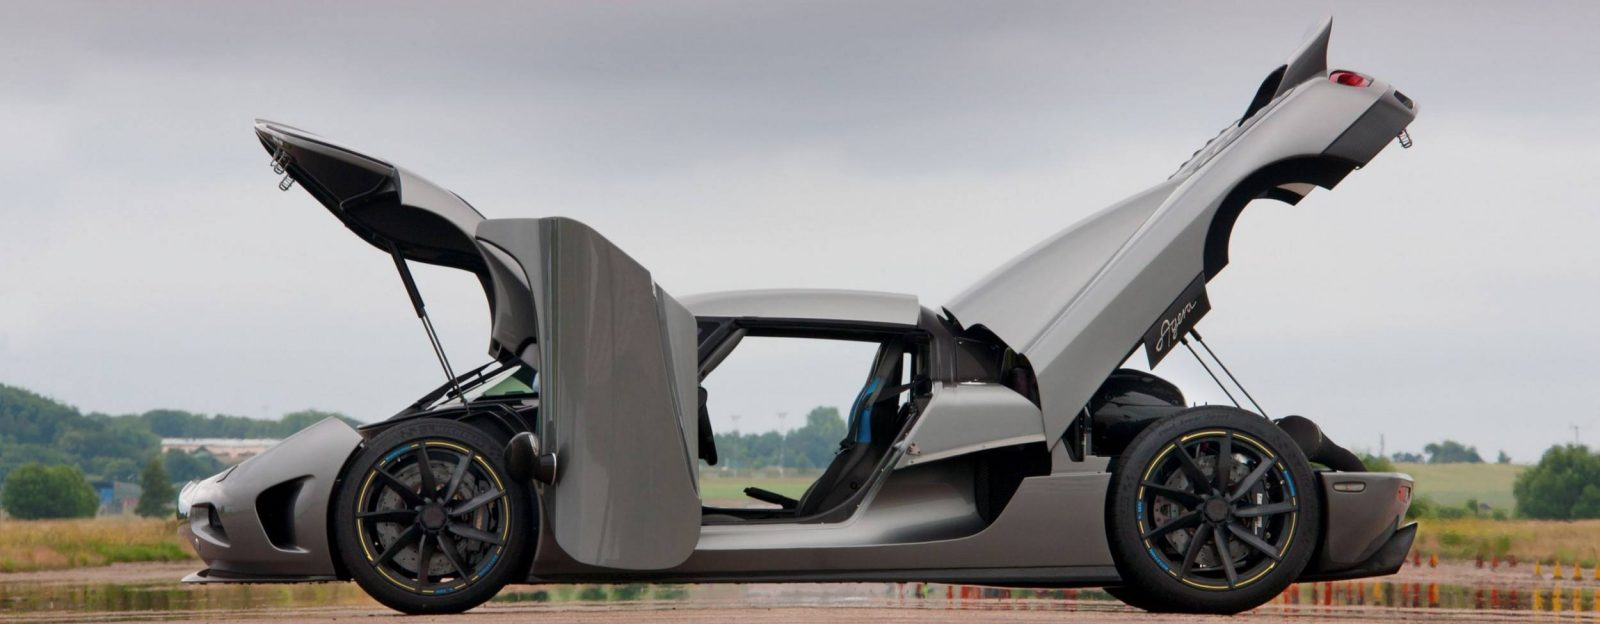 Koenigsegg Agera R Adds 240HP for Potential 280MPH Vmax of Generva-bound One1 Edition5